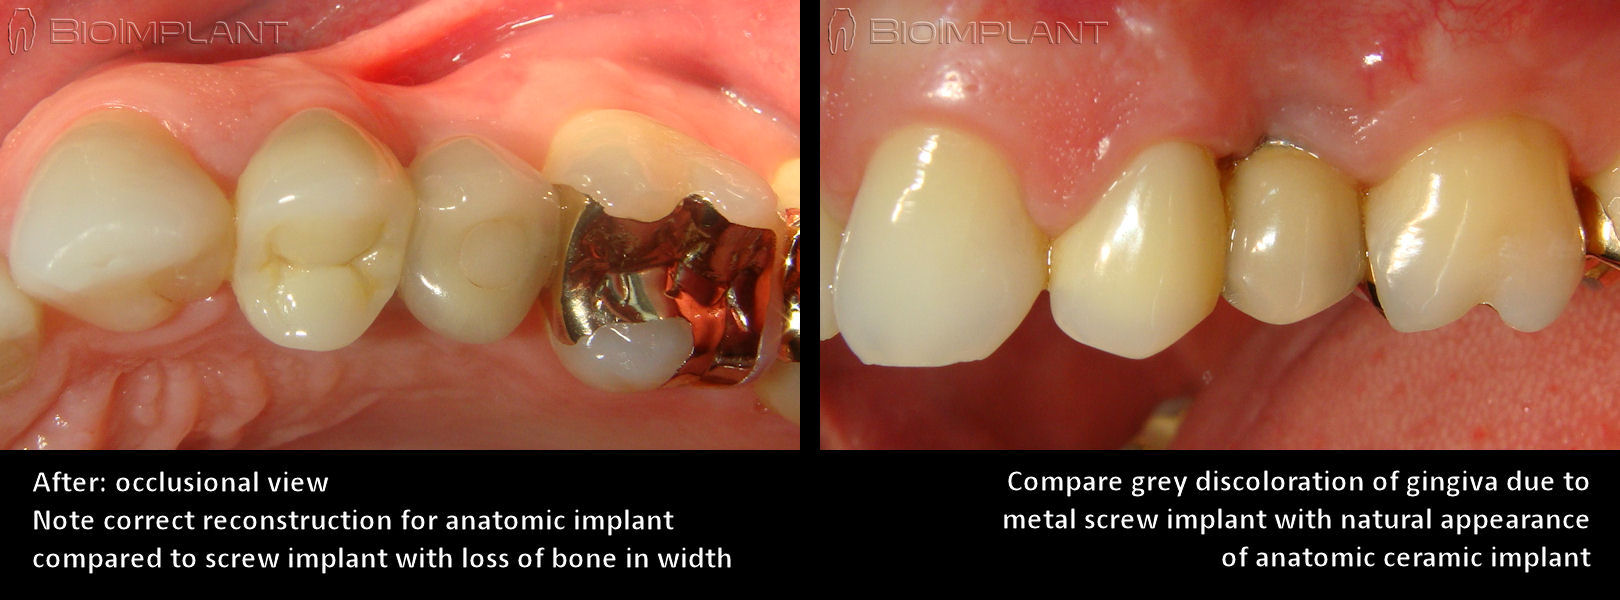 gingiva_anatomic_ceramic_implant_compared_to_metal_implant